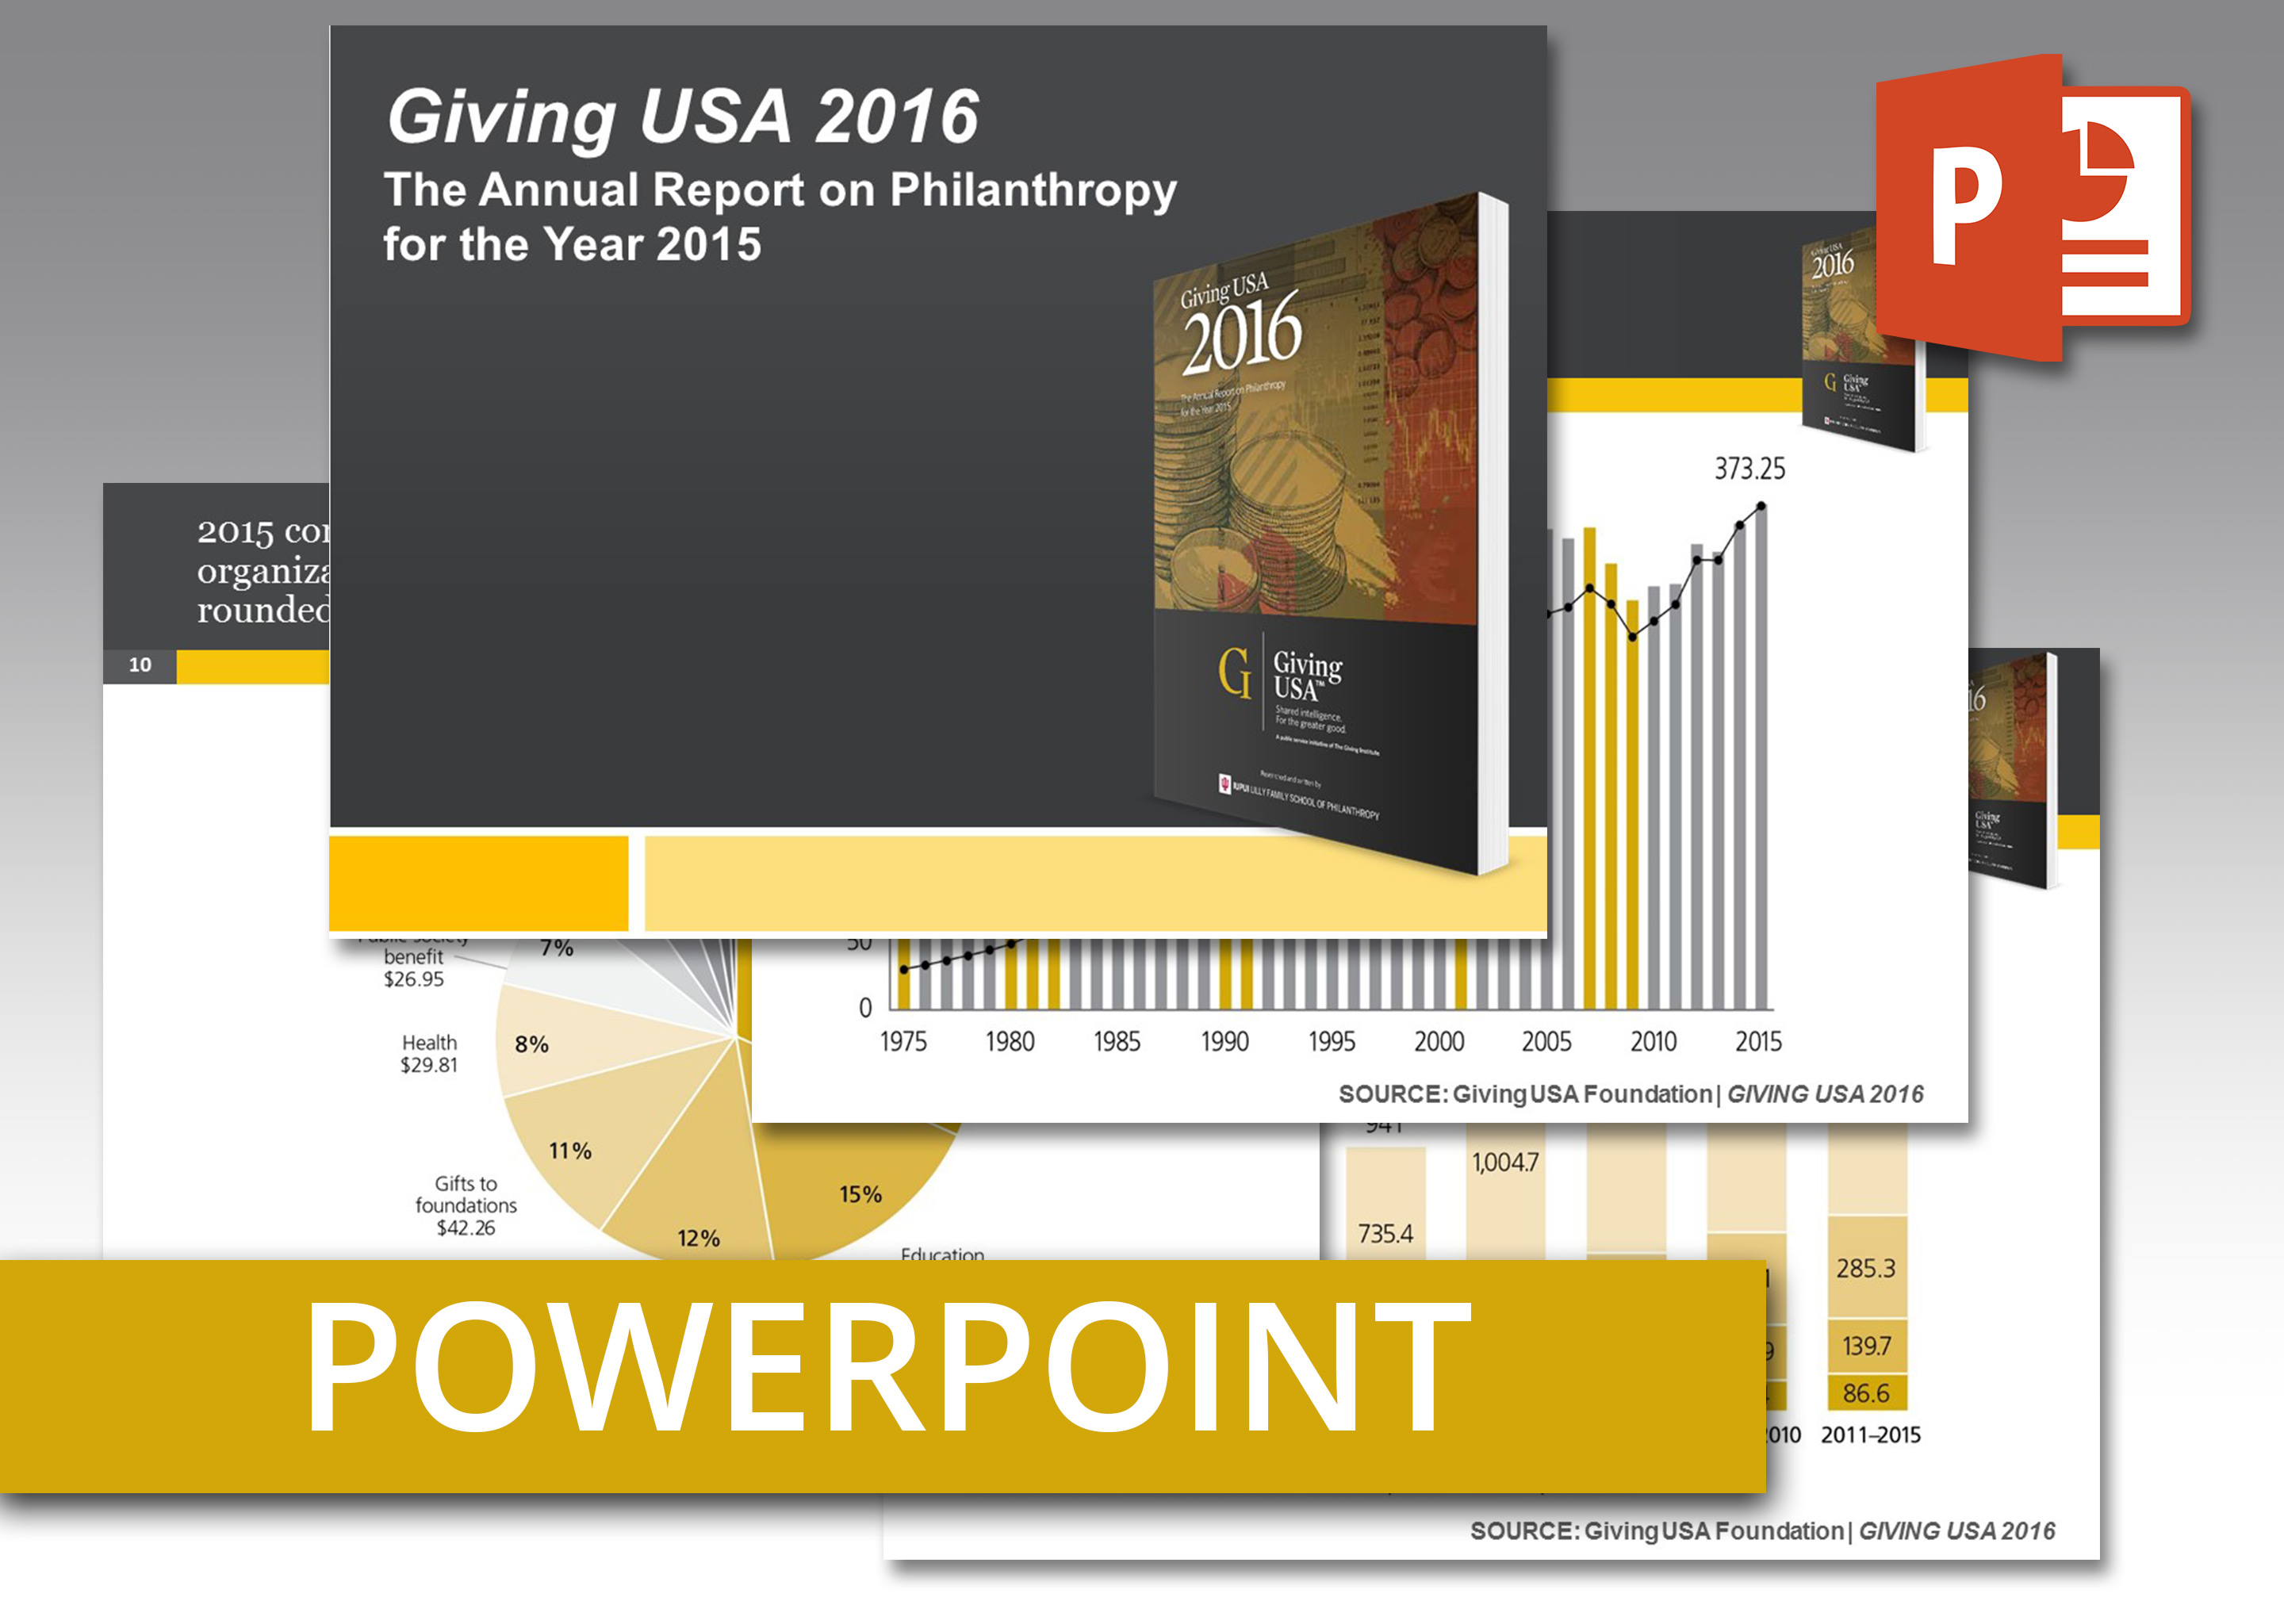 Coolmathgamesus  Gorgeous Giving Usa  Powerpoint An Easytouse Presentation Of Report  With Glamorous Giving Usa  Powerpoint An Easytouse Presentation Of Report Findings Including Talking Points With Extraordinary Task Pane Powerpoint Also Quiz On Powerpoint In Addition Information On Microsoft Powerpoint And Powerpoint Viewer  As Well As Free Science Powerpoints Additionally Powerpoint Birthday Templates From Givingusaorg With Coolmathgamesus  Glamorous Giving Usa  Powerpoint An Easytouse Presentation Of Report  With Extraordinary Giving Usa  Powerpoint An Easytouse Presentation Of Report Findings Including Talking Points And Gorgeous Task Pane Powerpoint Also Quiz On Powerpoint In Addition Information On Microsoft Powerpoint From Givingusaorg